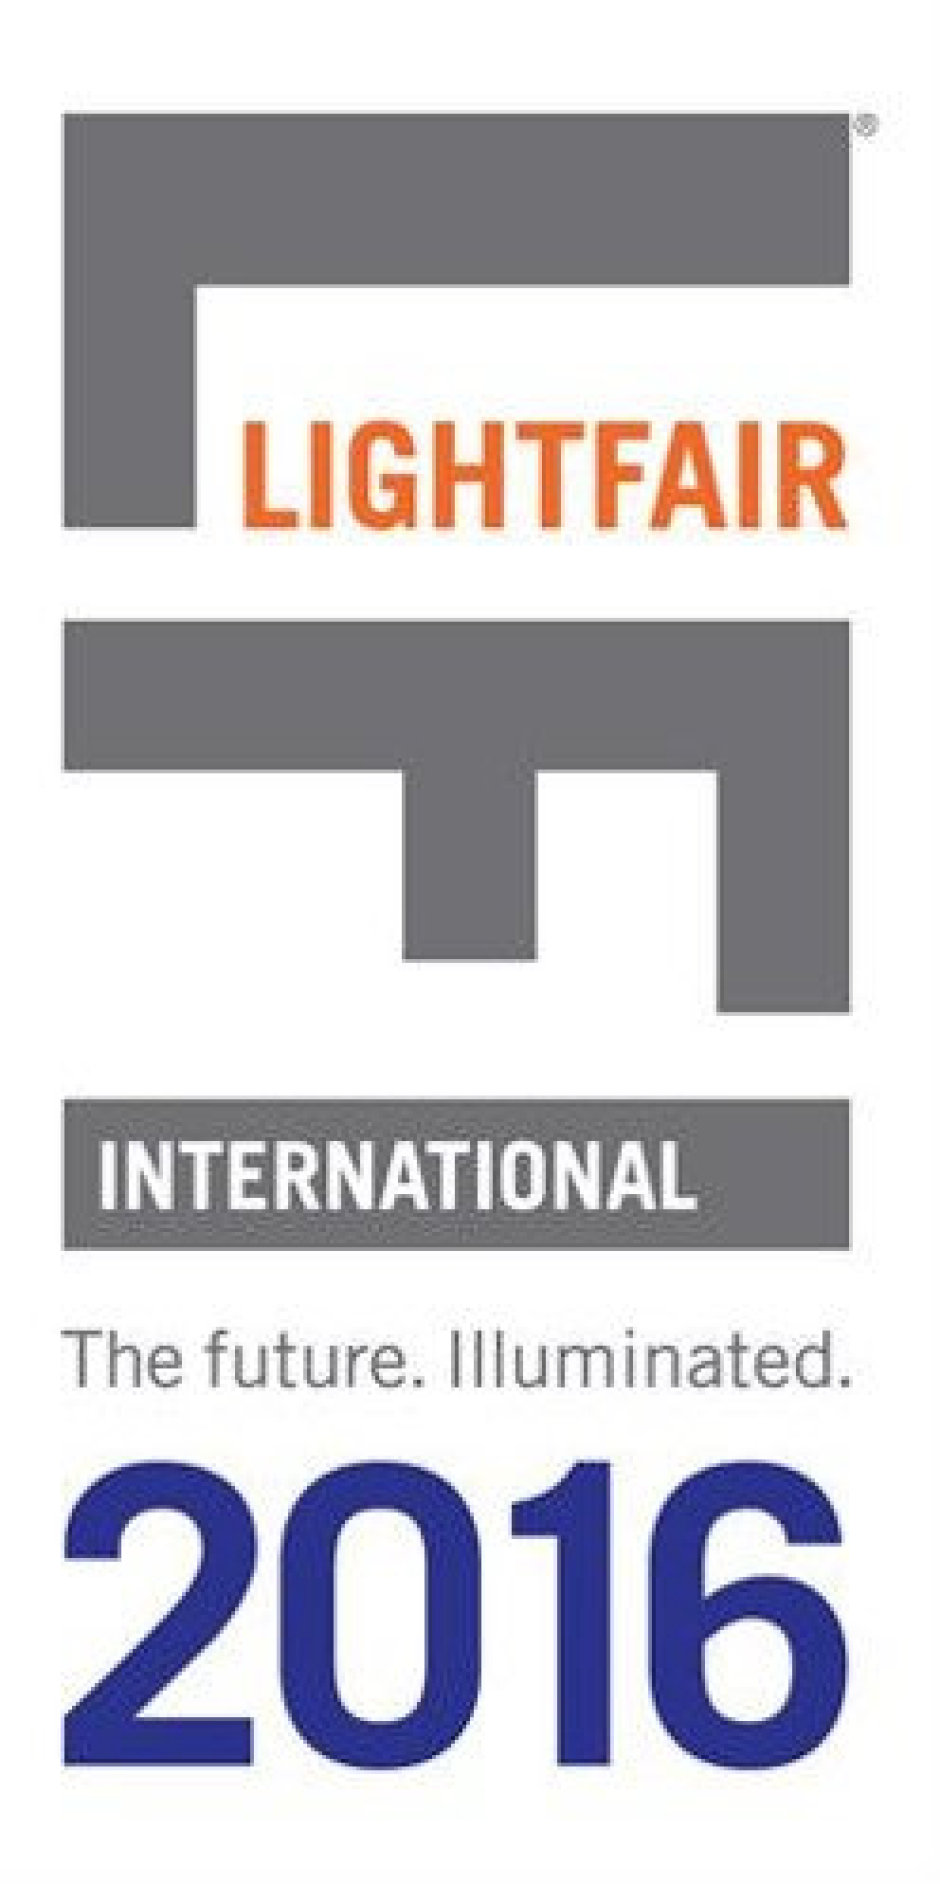 LIGHTFAIR 2016 Logo